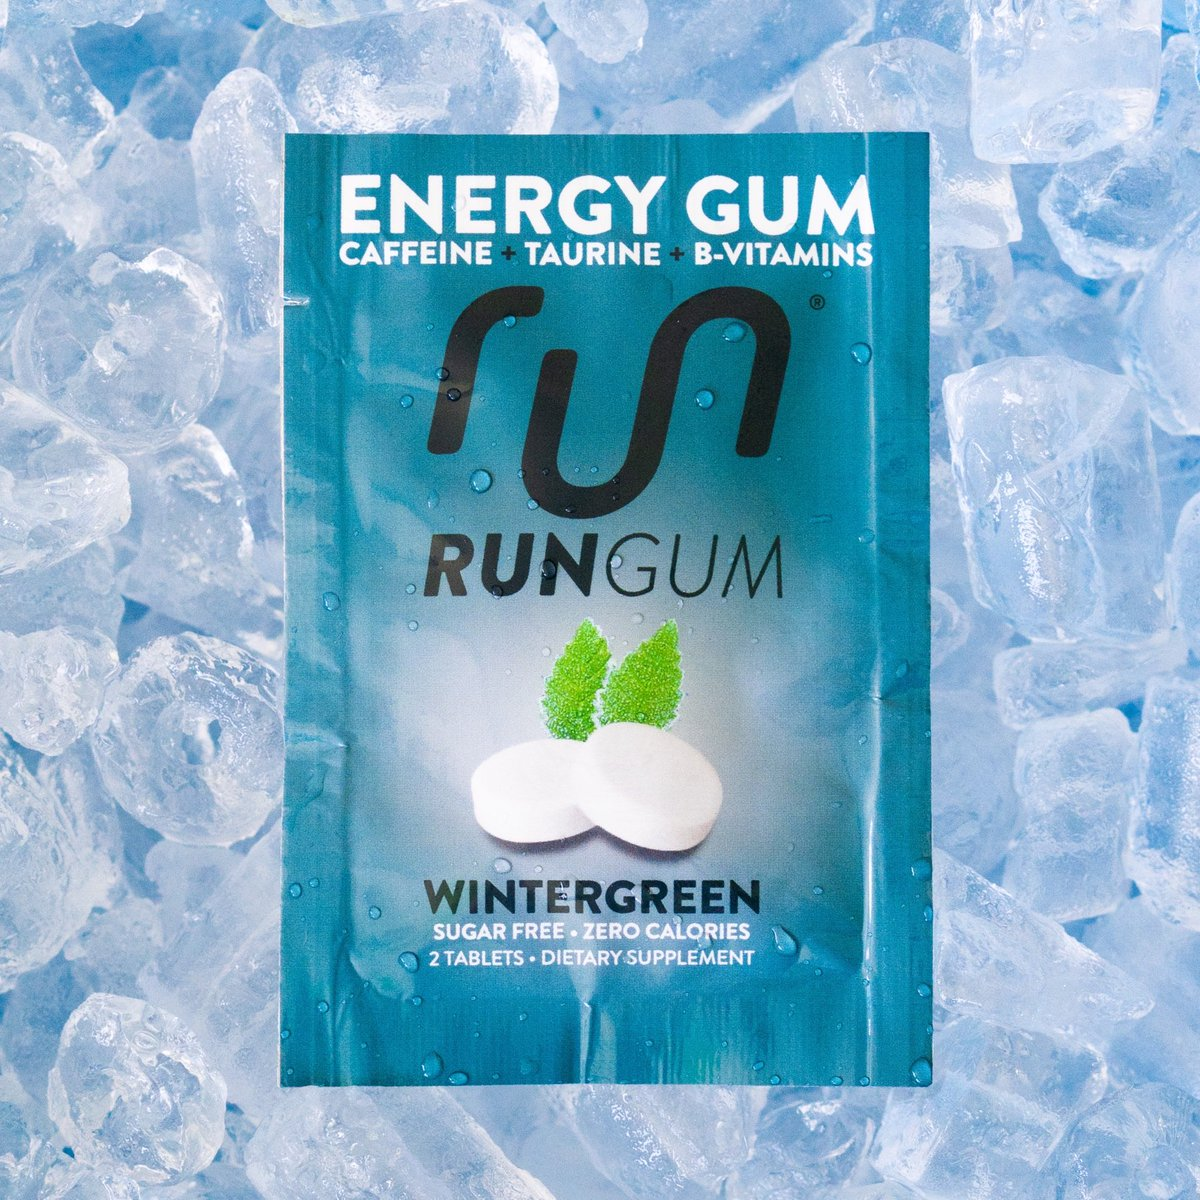 Introducing our brand new limited-edition flavor...WINTERGREEN!🍃  Icy cool freshness combined with the boost you love. We think this is the best flavor we've put out so far 🤫 This limited edition run isn't gonna last... so snag it fast! Get it here: https://t.co/JIJpEKxjU9 https://t.co/Z1kikeTSDp